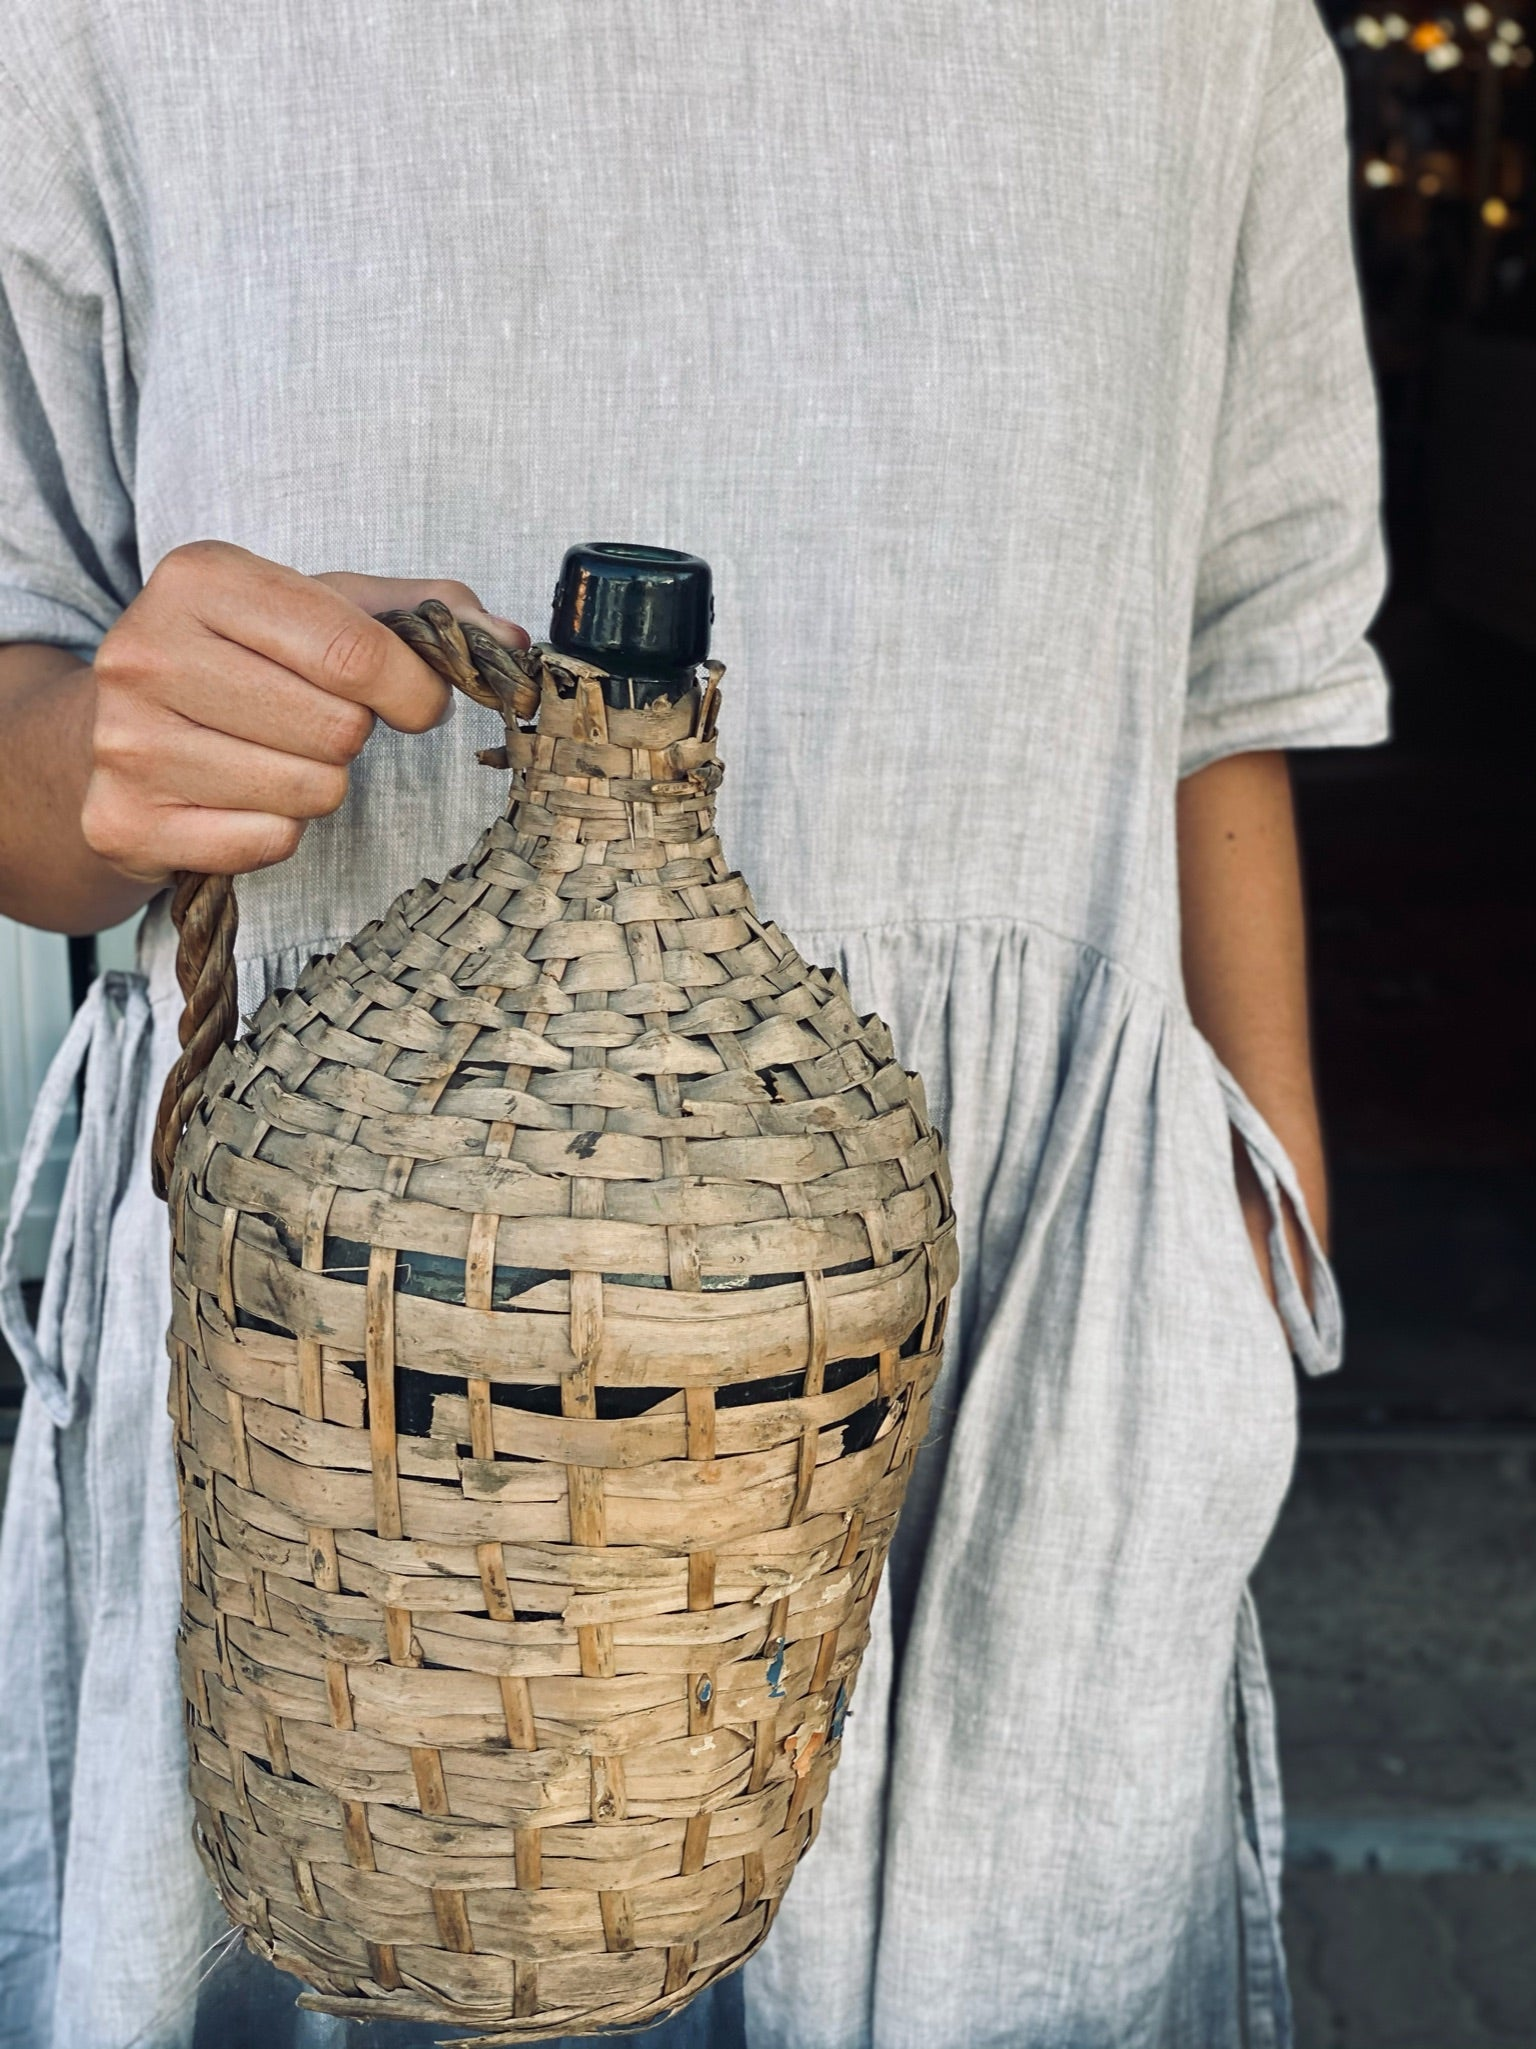 Pitcher in Woven Basket